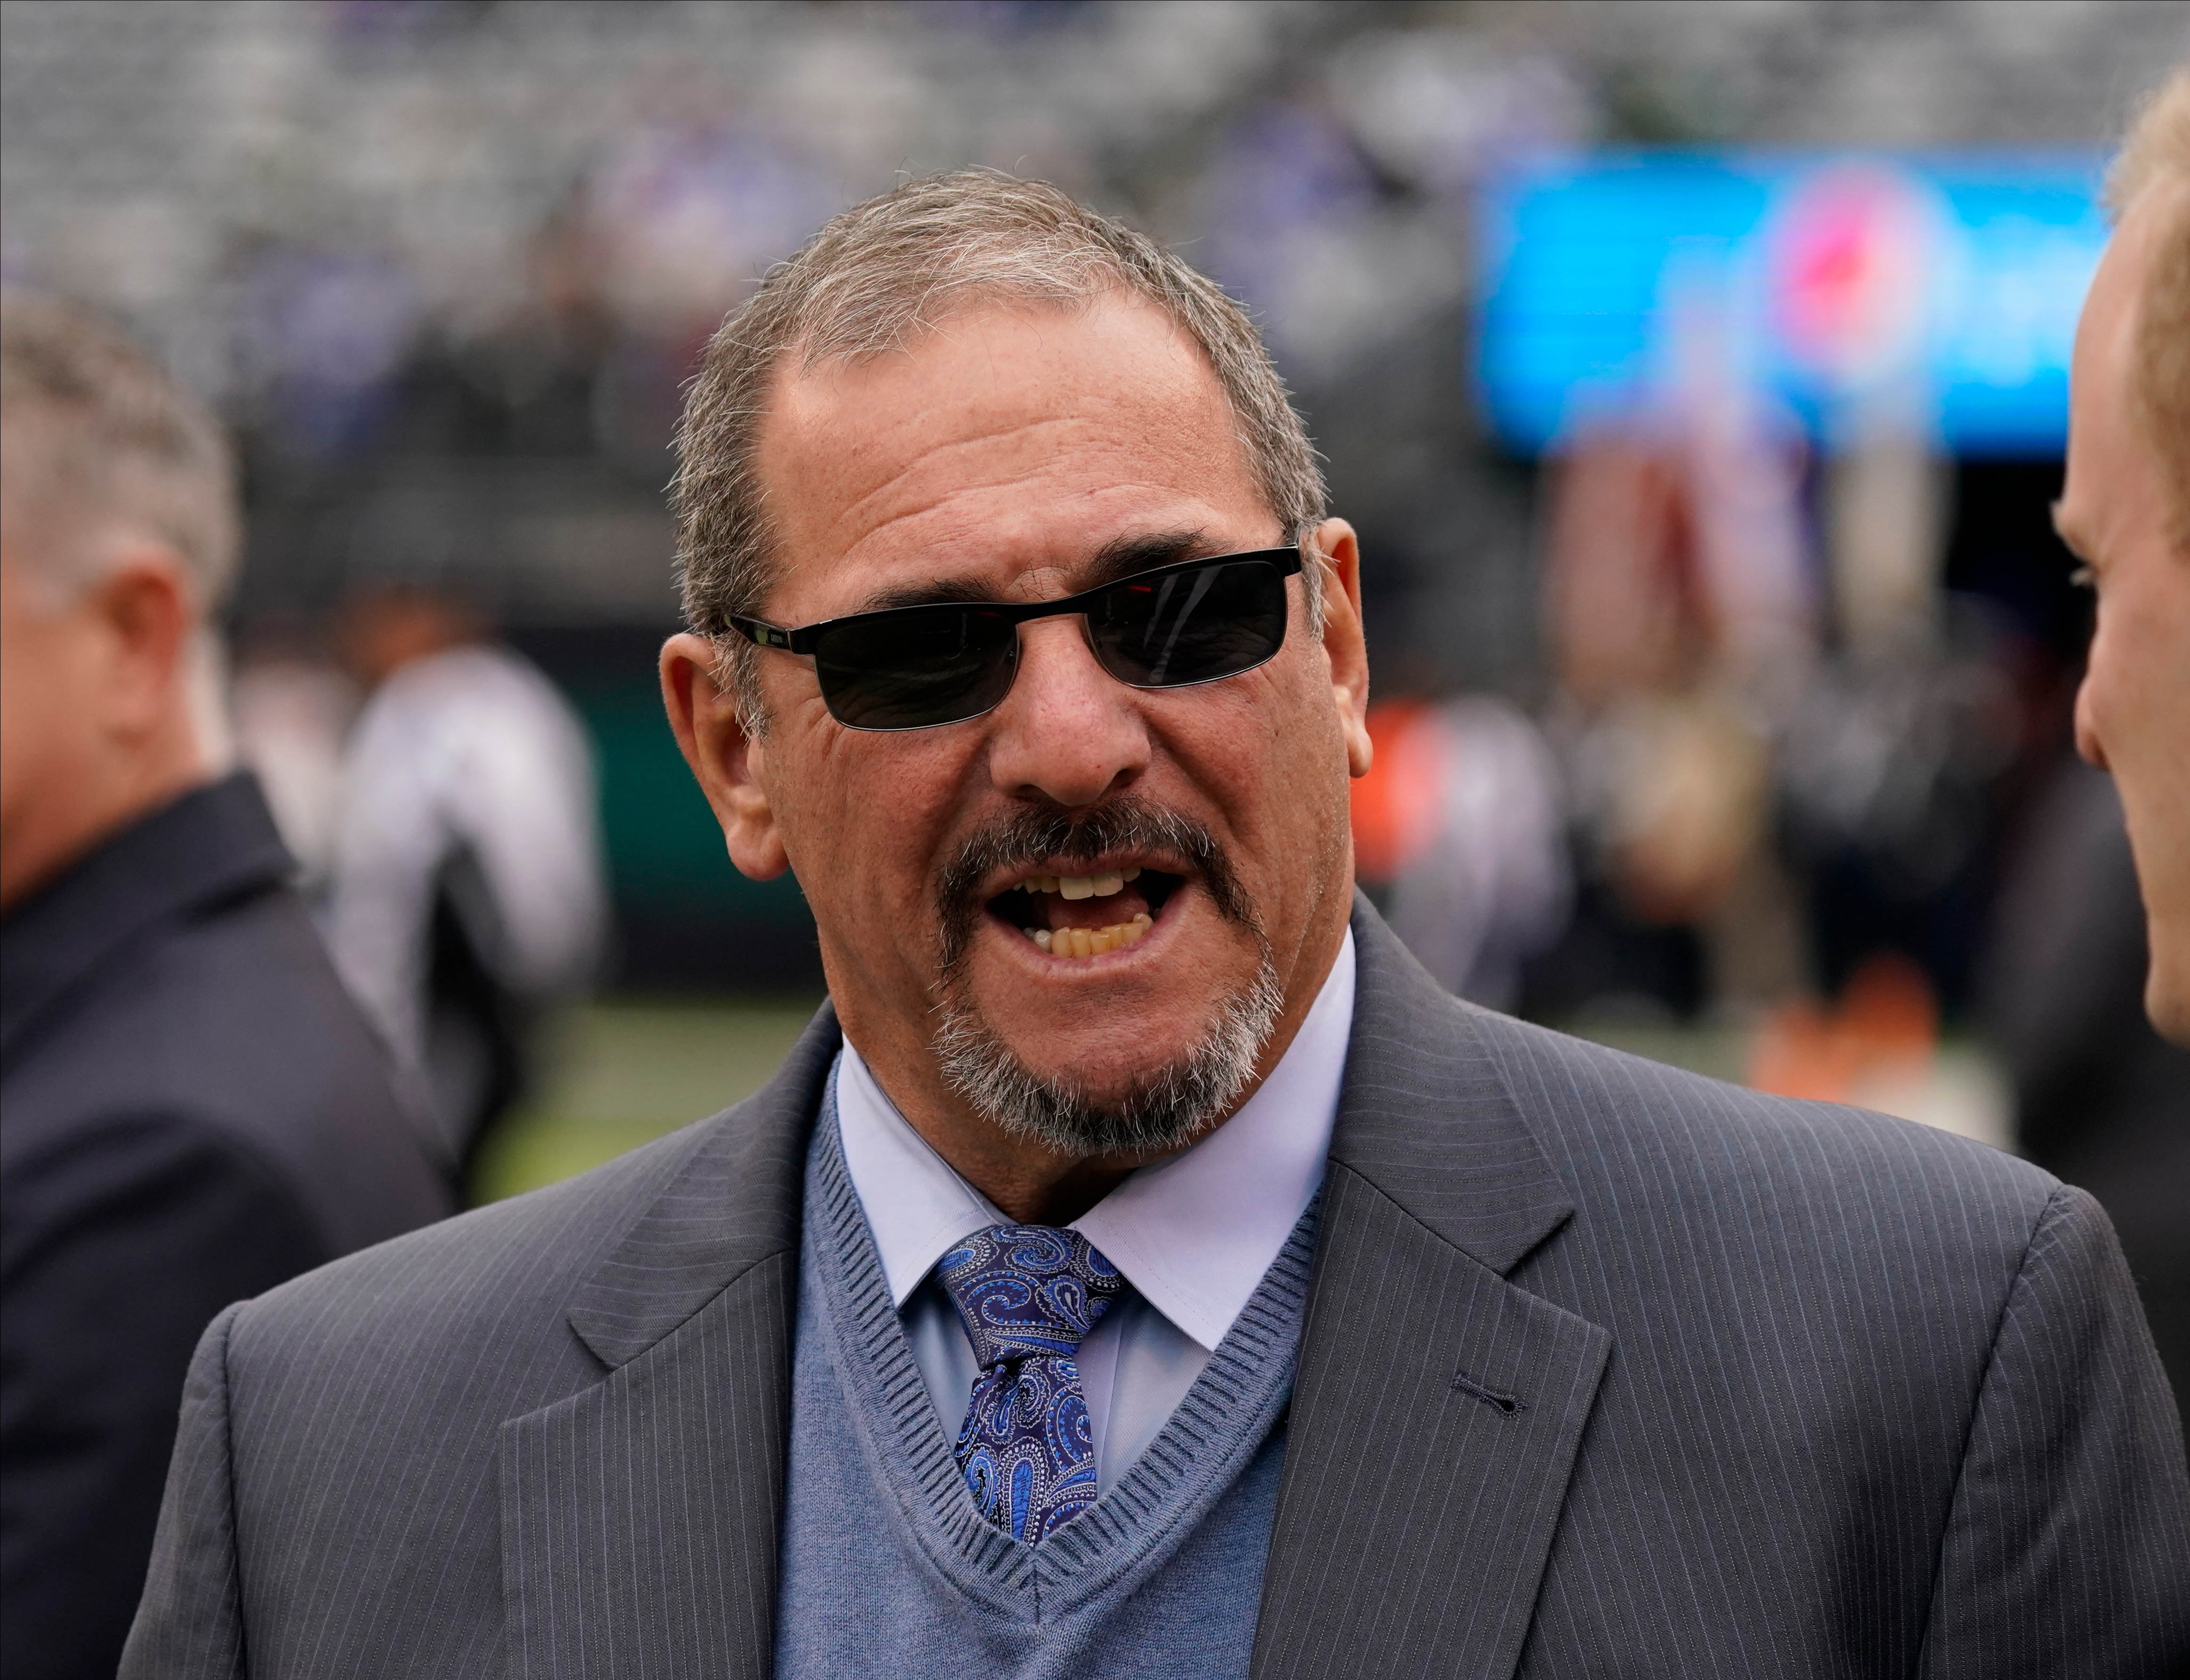 Even Dave Gettleman admits he set Giants franchise back years